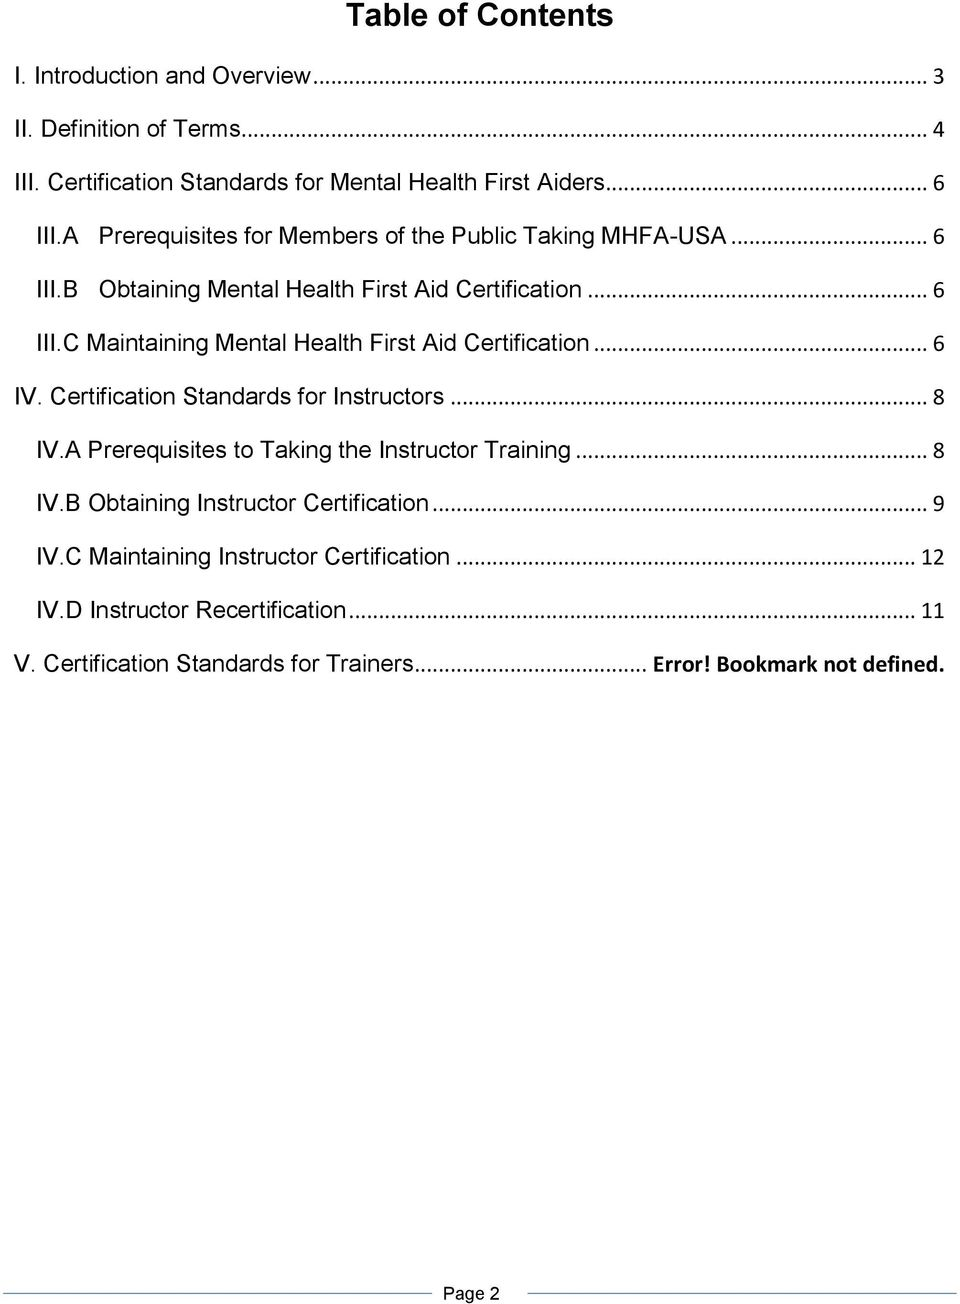 Mental Health First Aid Usa Certification Standards Pdf